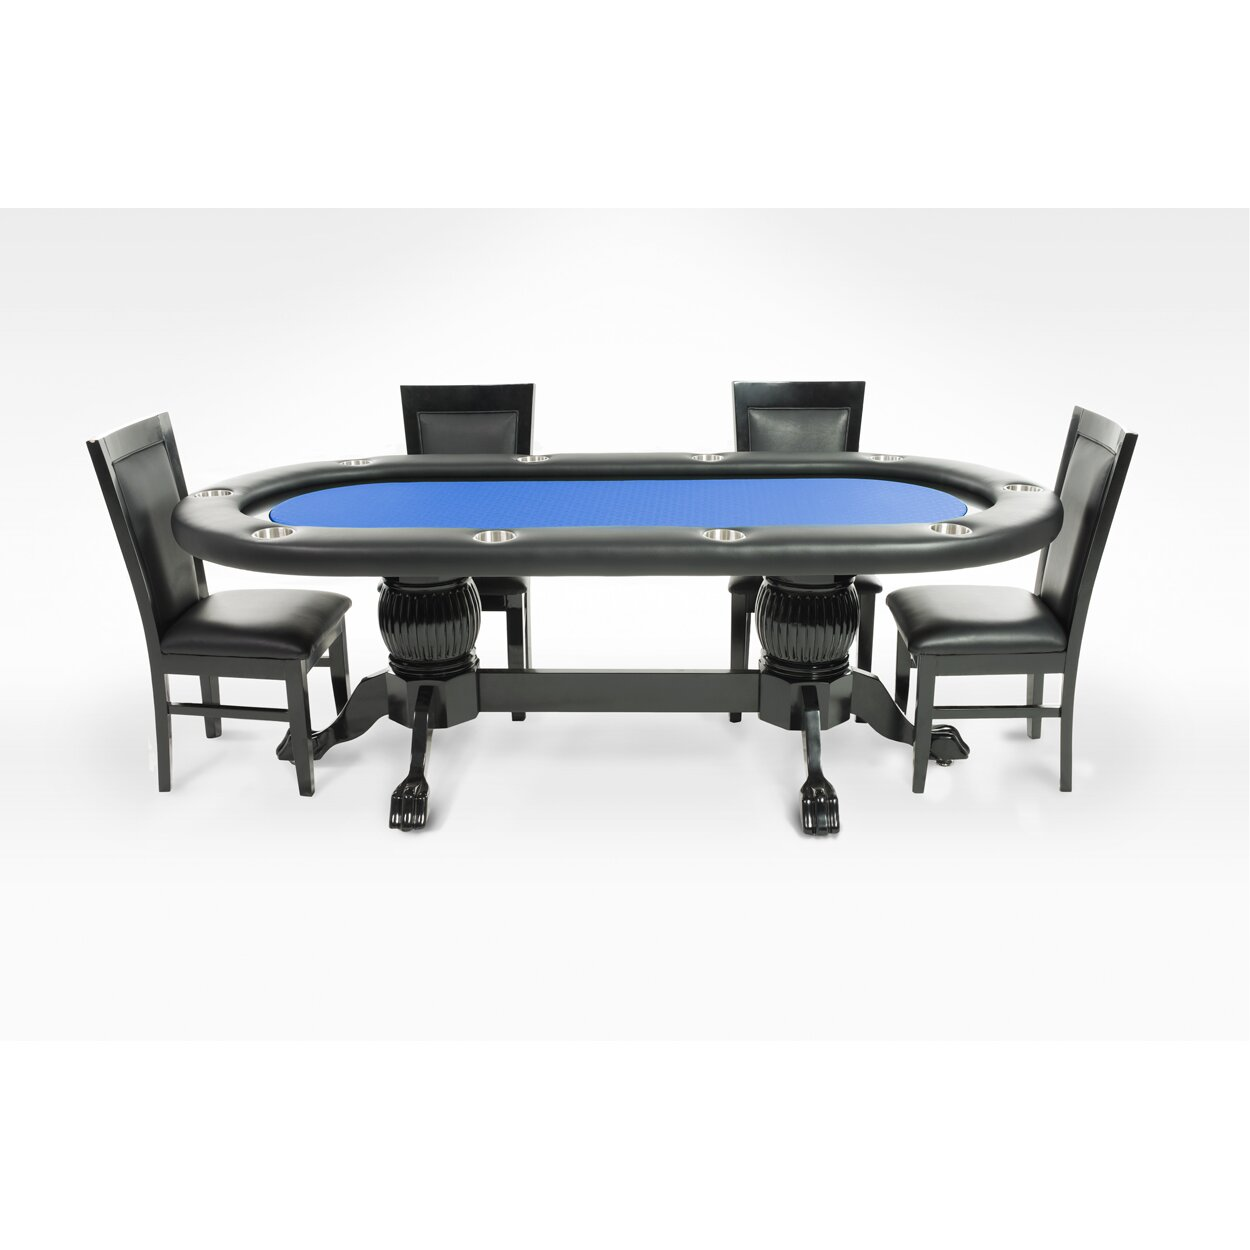 BBO Poker Elite 8 Piece Poker Dining Table Set With Dining